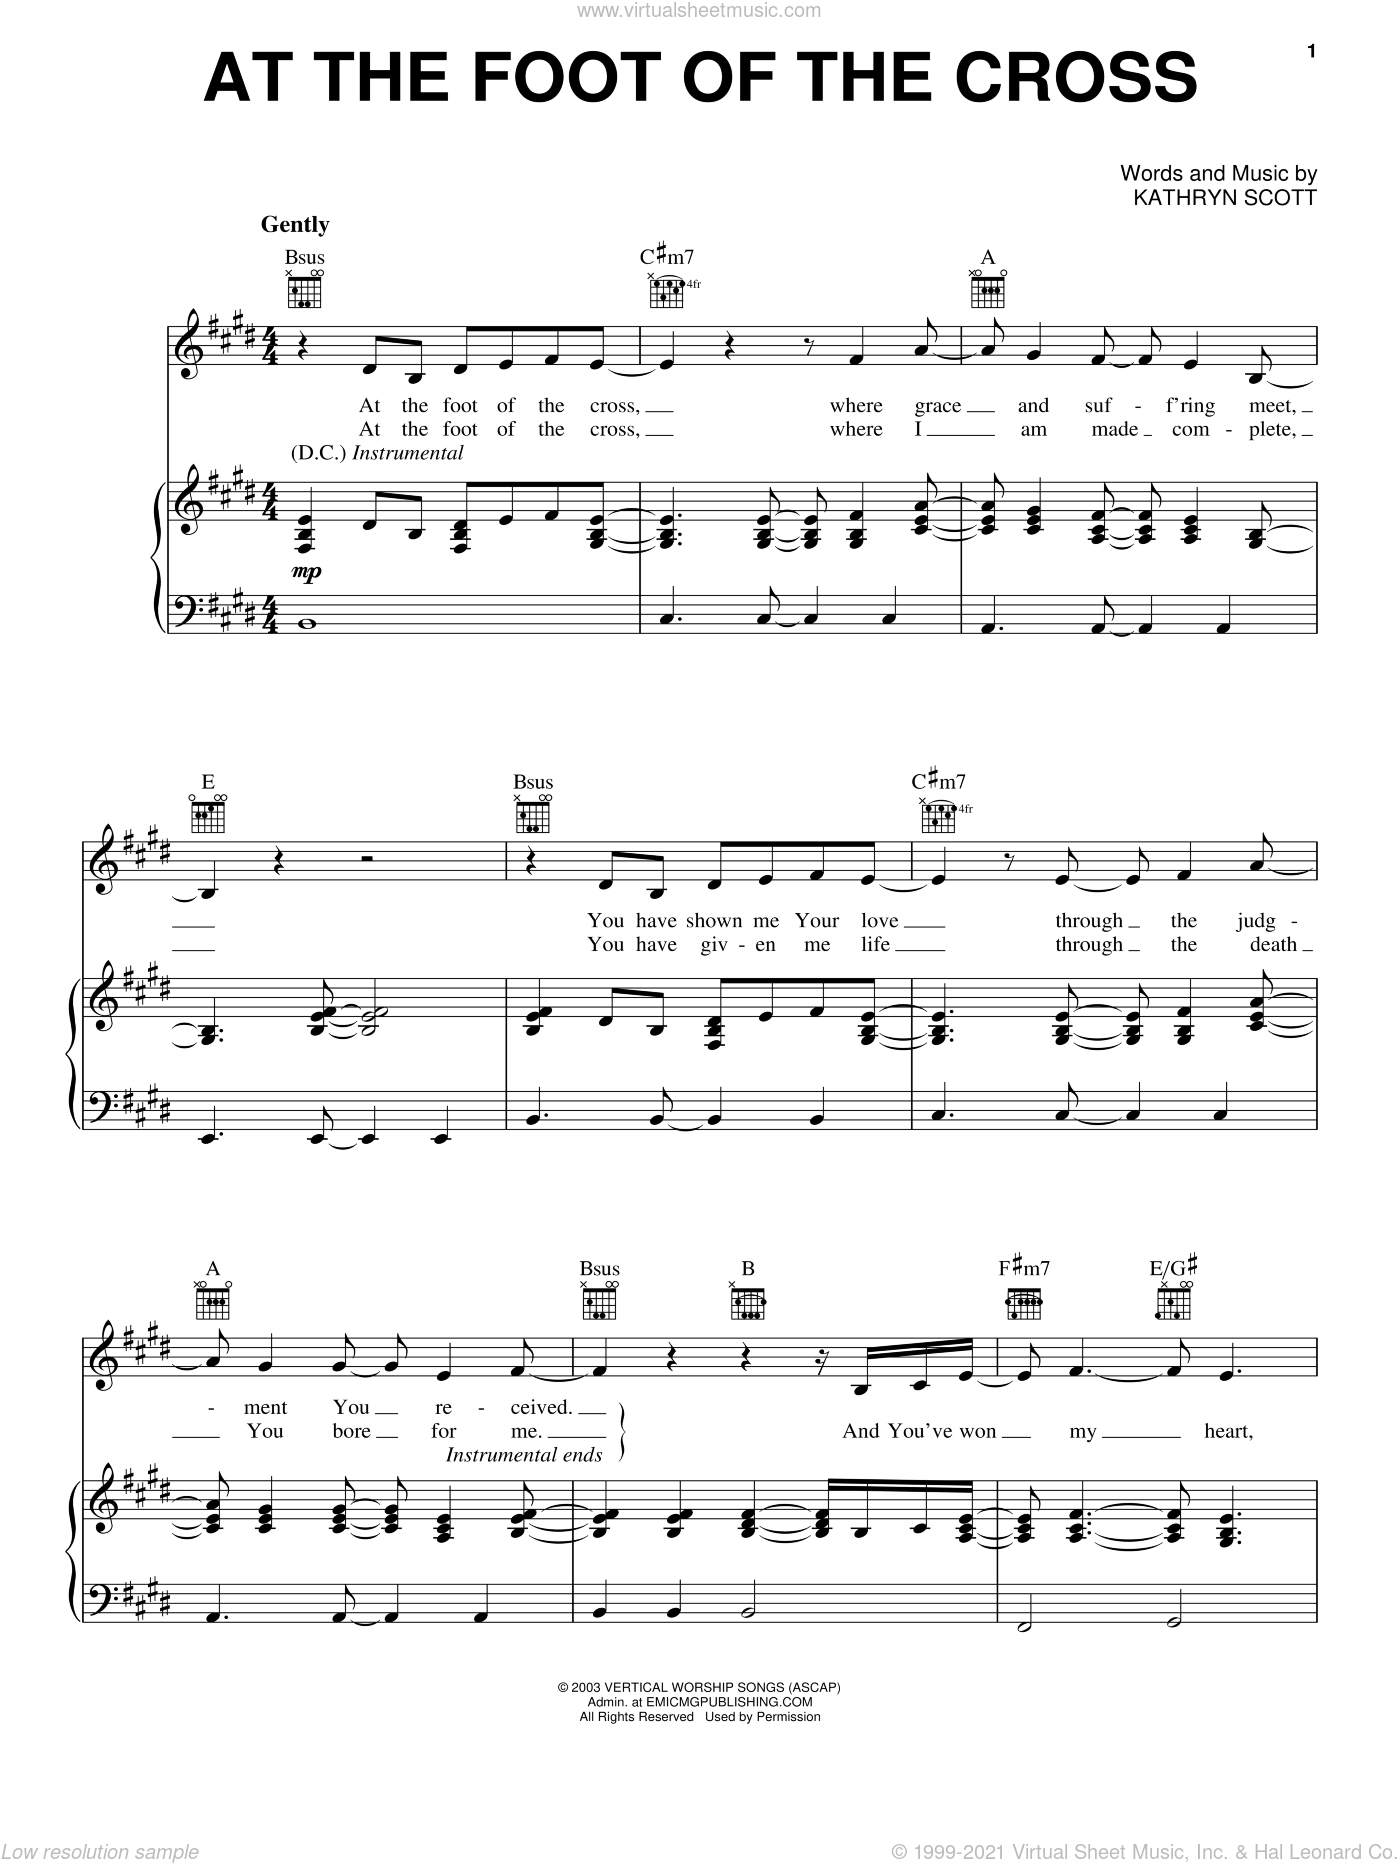 At The Foot Of The Cross sheet music for voice, piano or guitar by Kathryn Scott, intermediate skill level